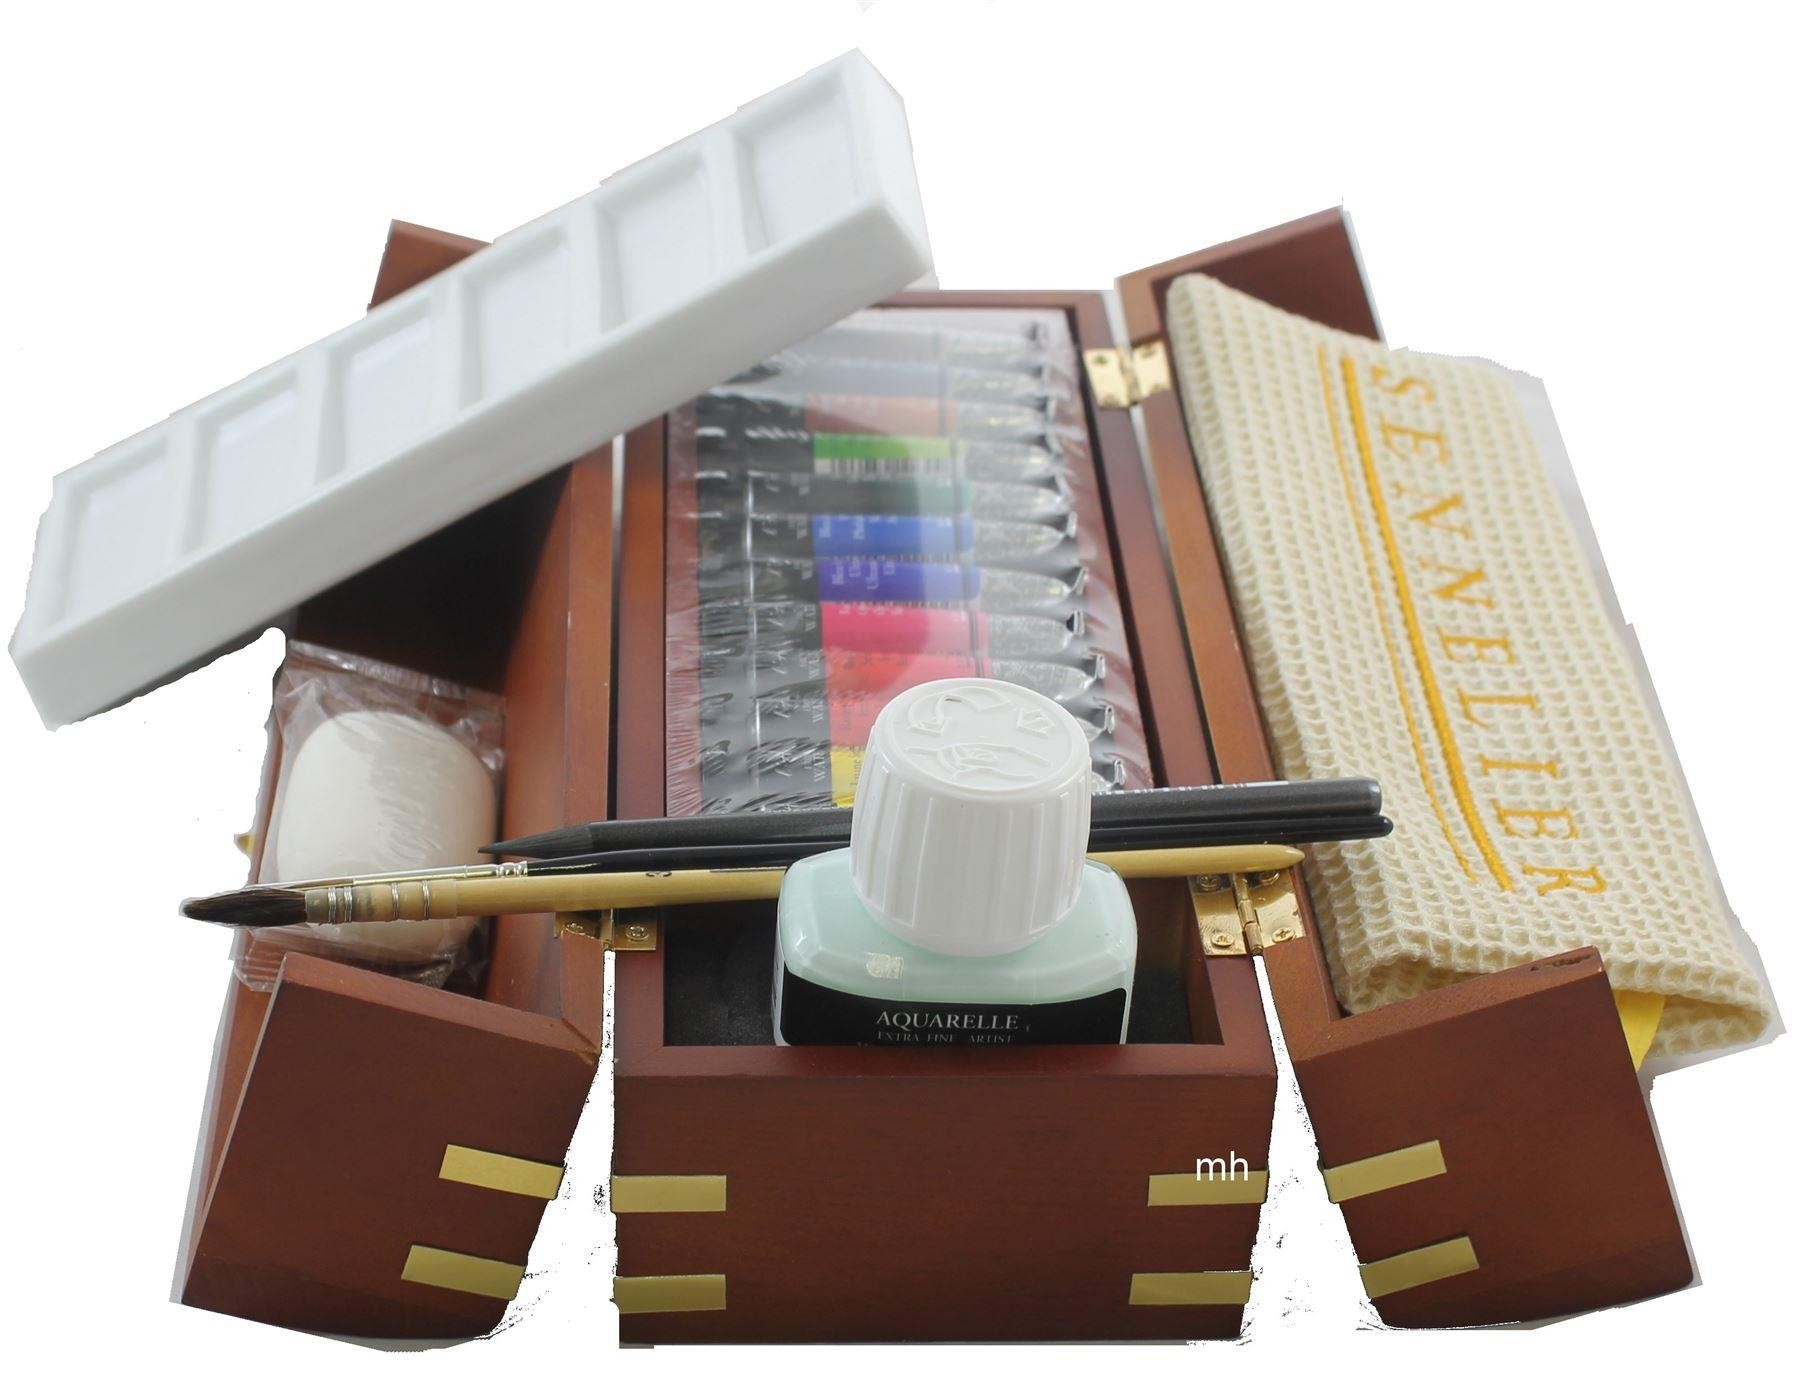 Sennelier artists watercolour wooden treasure chest gift set. 12 tubes extra fine